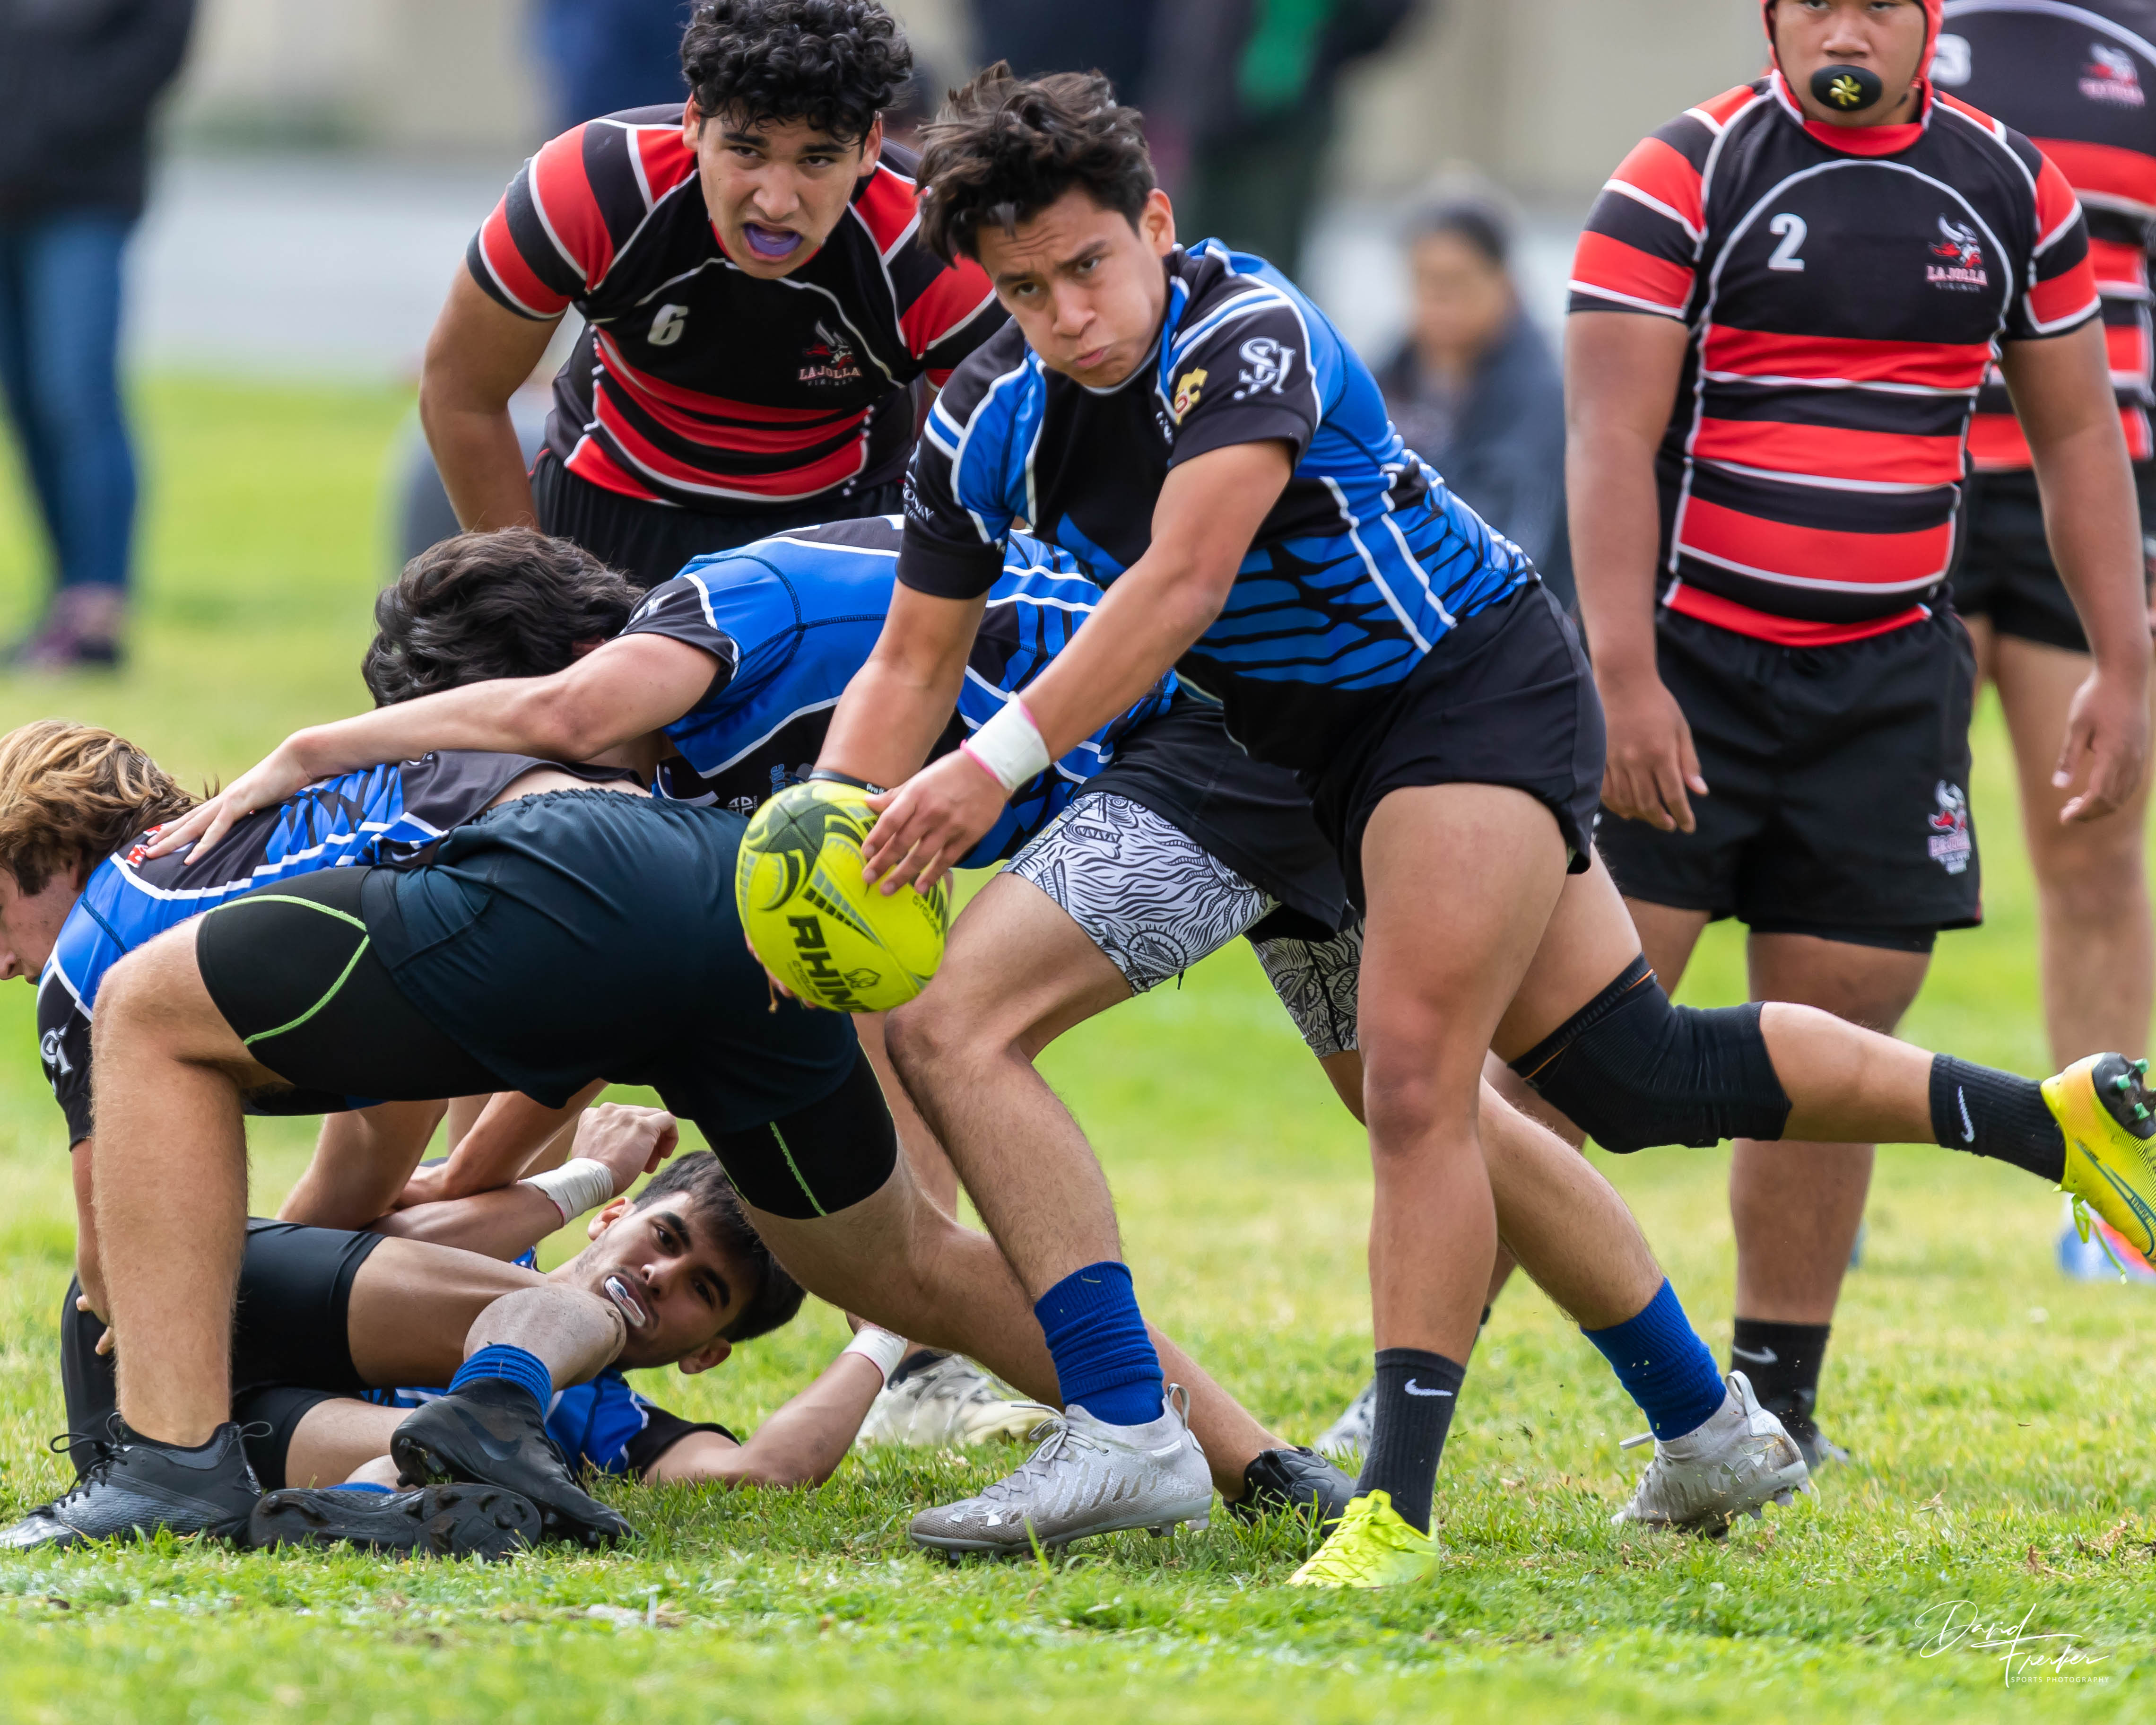 LaJollaRugby86